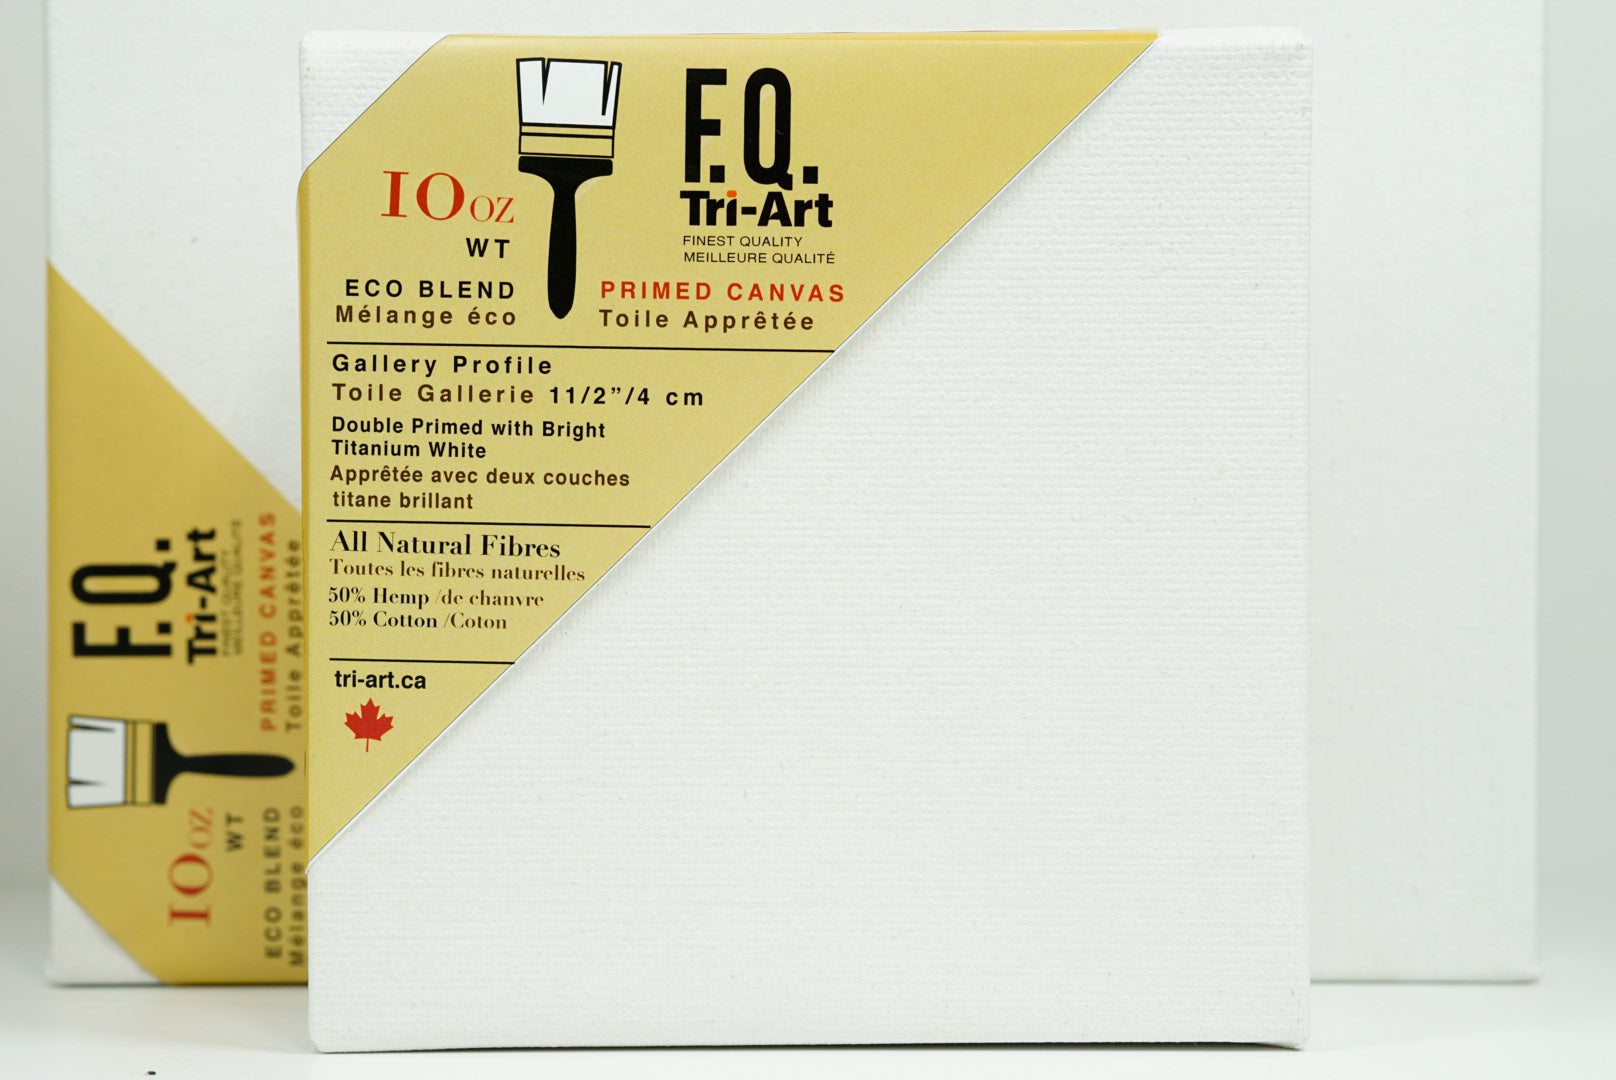 "Tri-Art FQ Stretched Canvas - Artist Gallery 1 1/2"" Profile Primed - 12x24"" (4438789783639)"